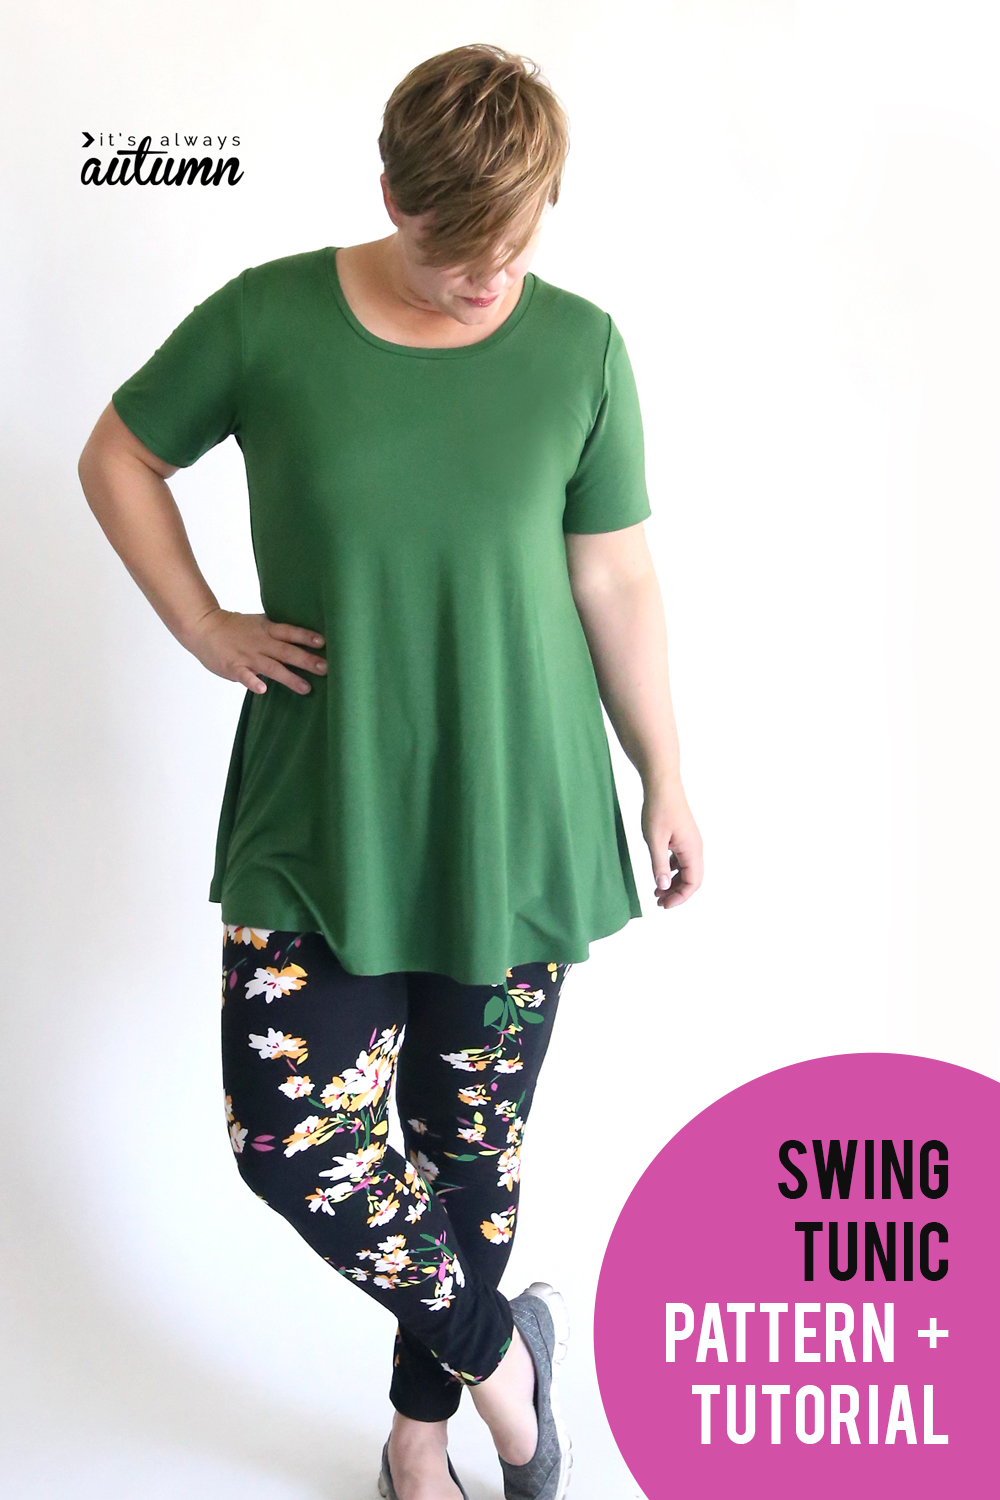 Sew up a cute swing tunic to wear with your favorite leggings this fall! Easy sewing pattern and tutorial.